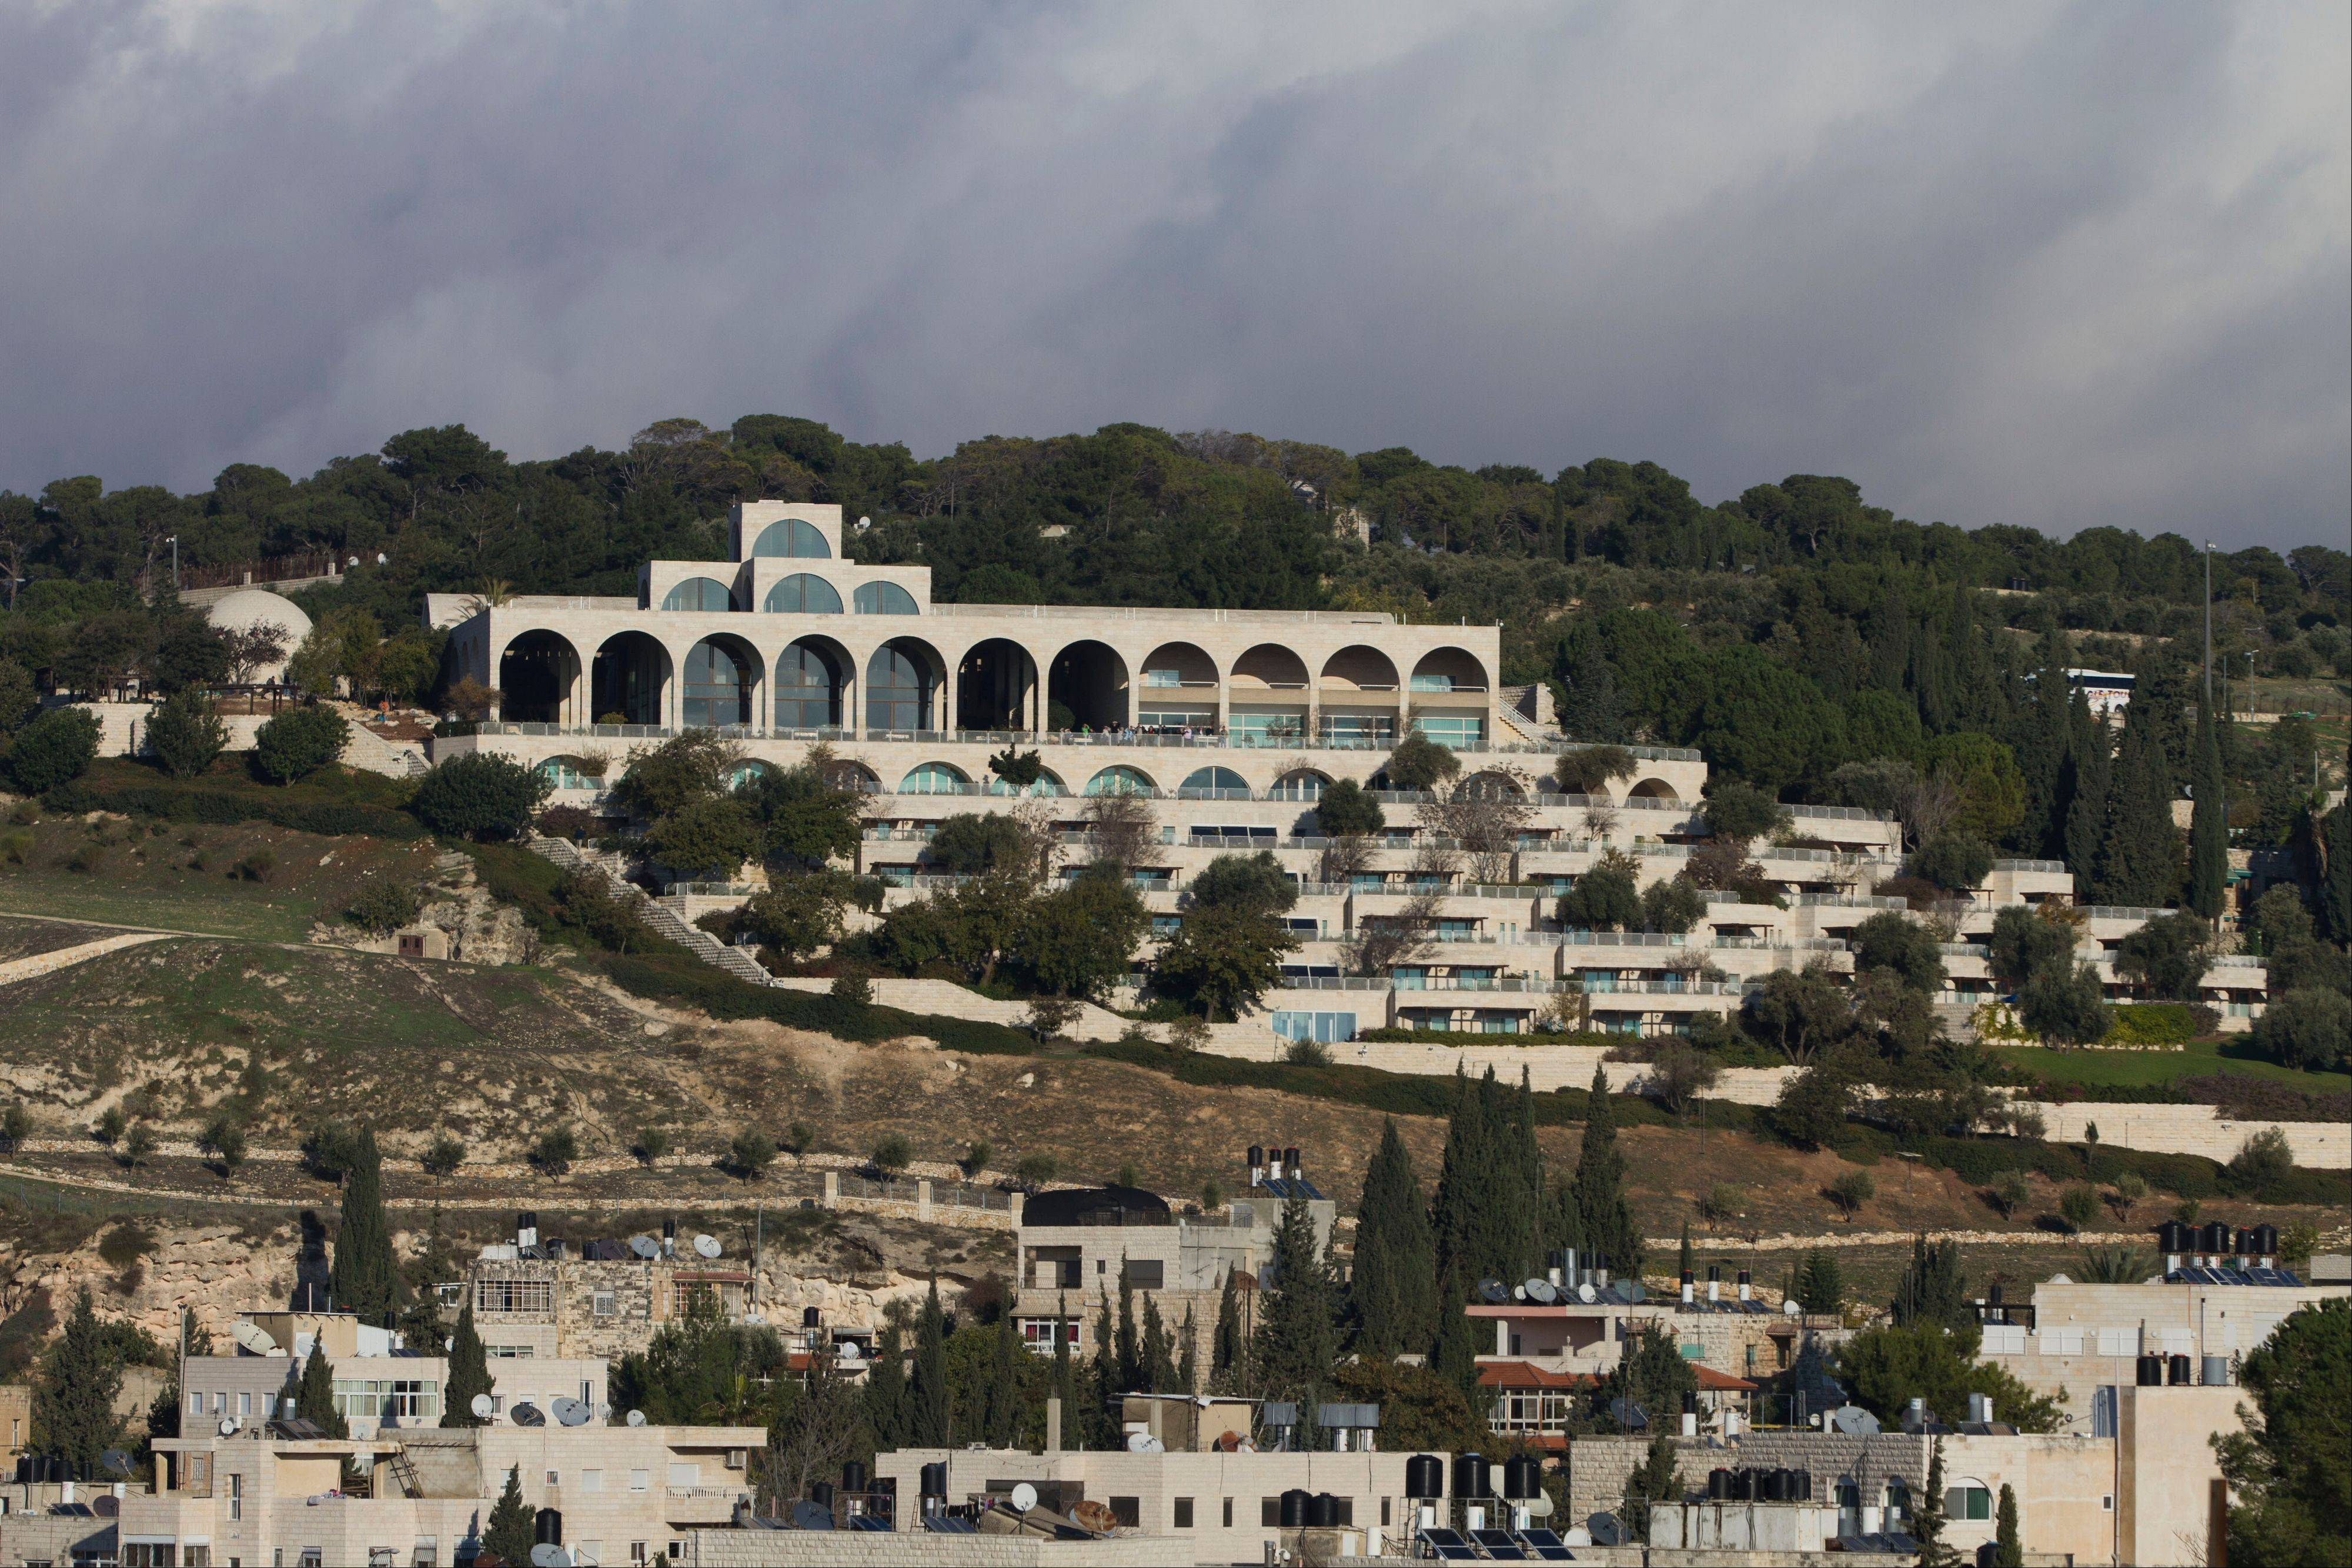 The Mormon University building, one of Jerusalem's tourist destinations, is located on Mount Scopus.